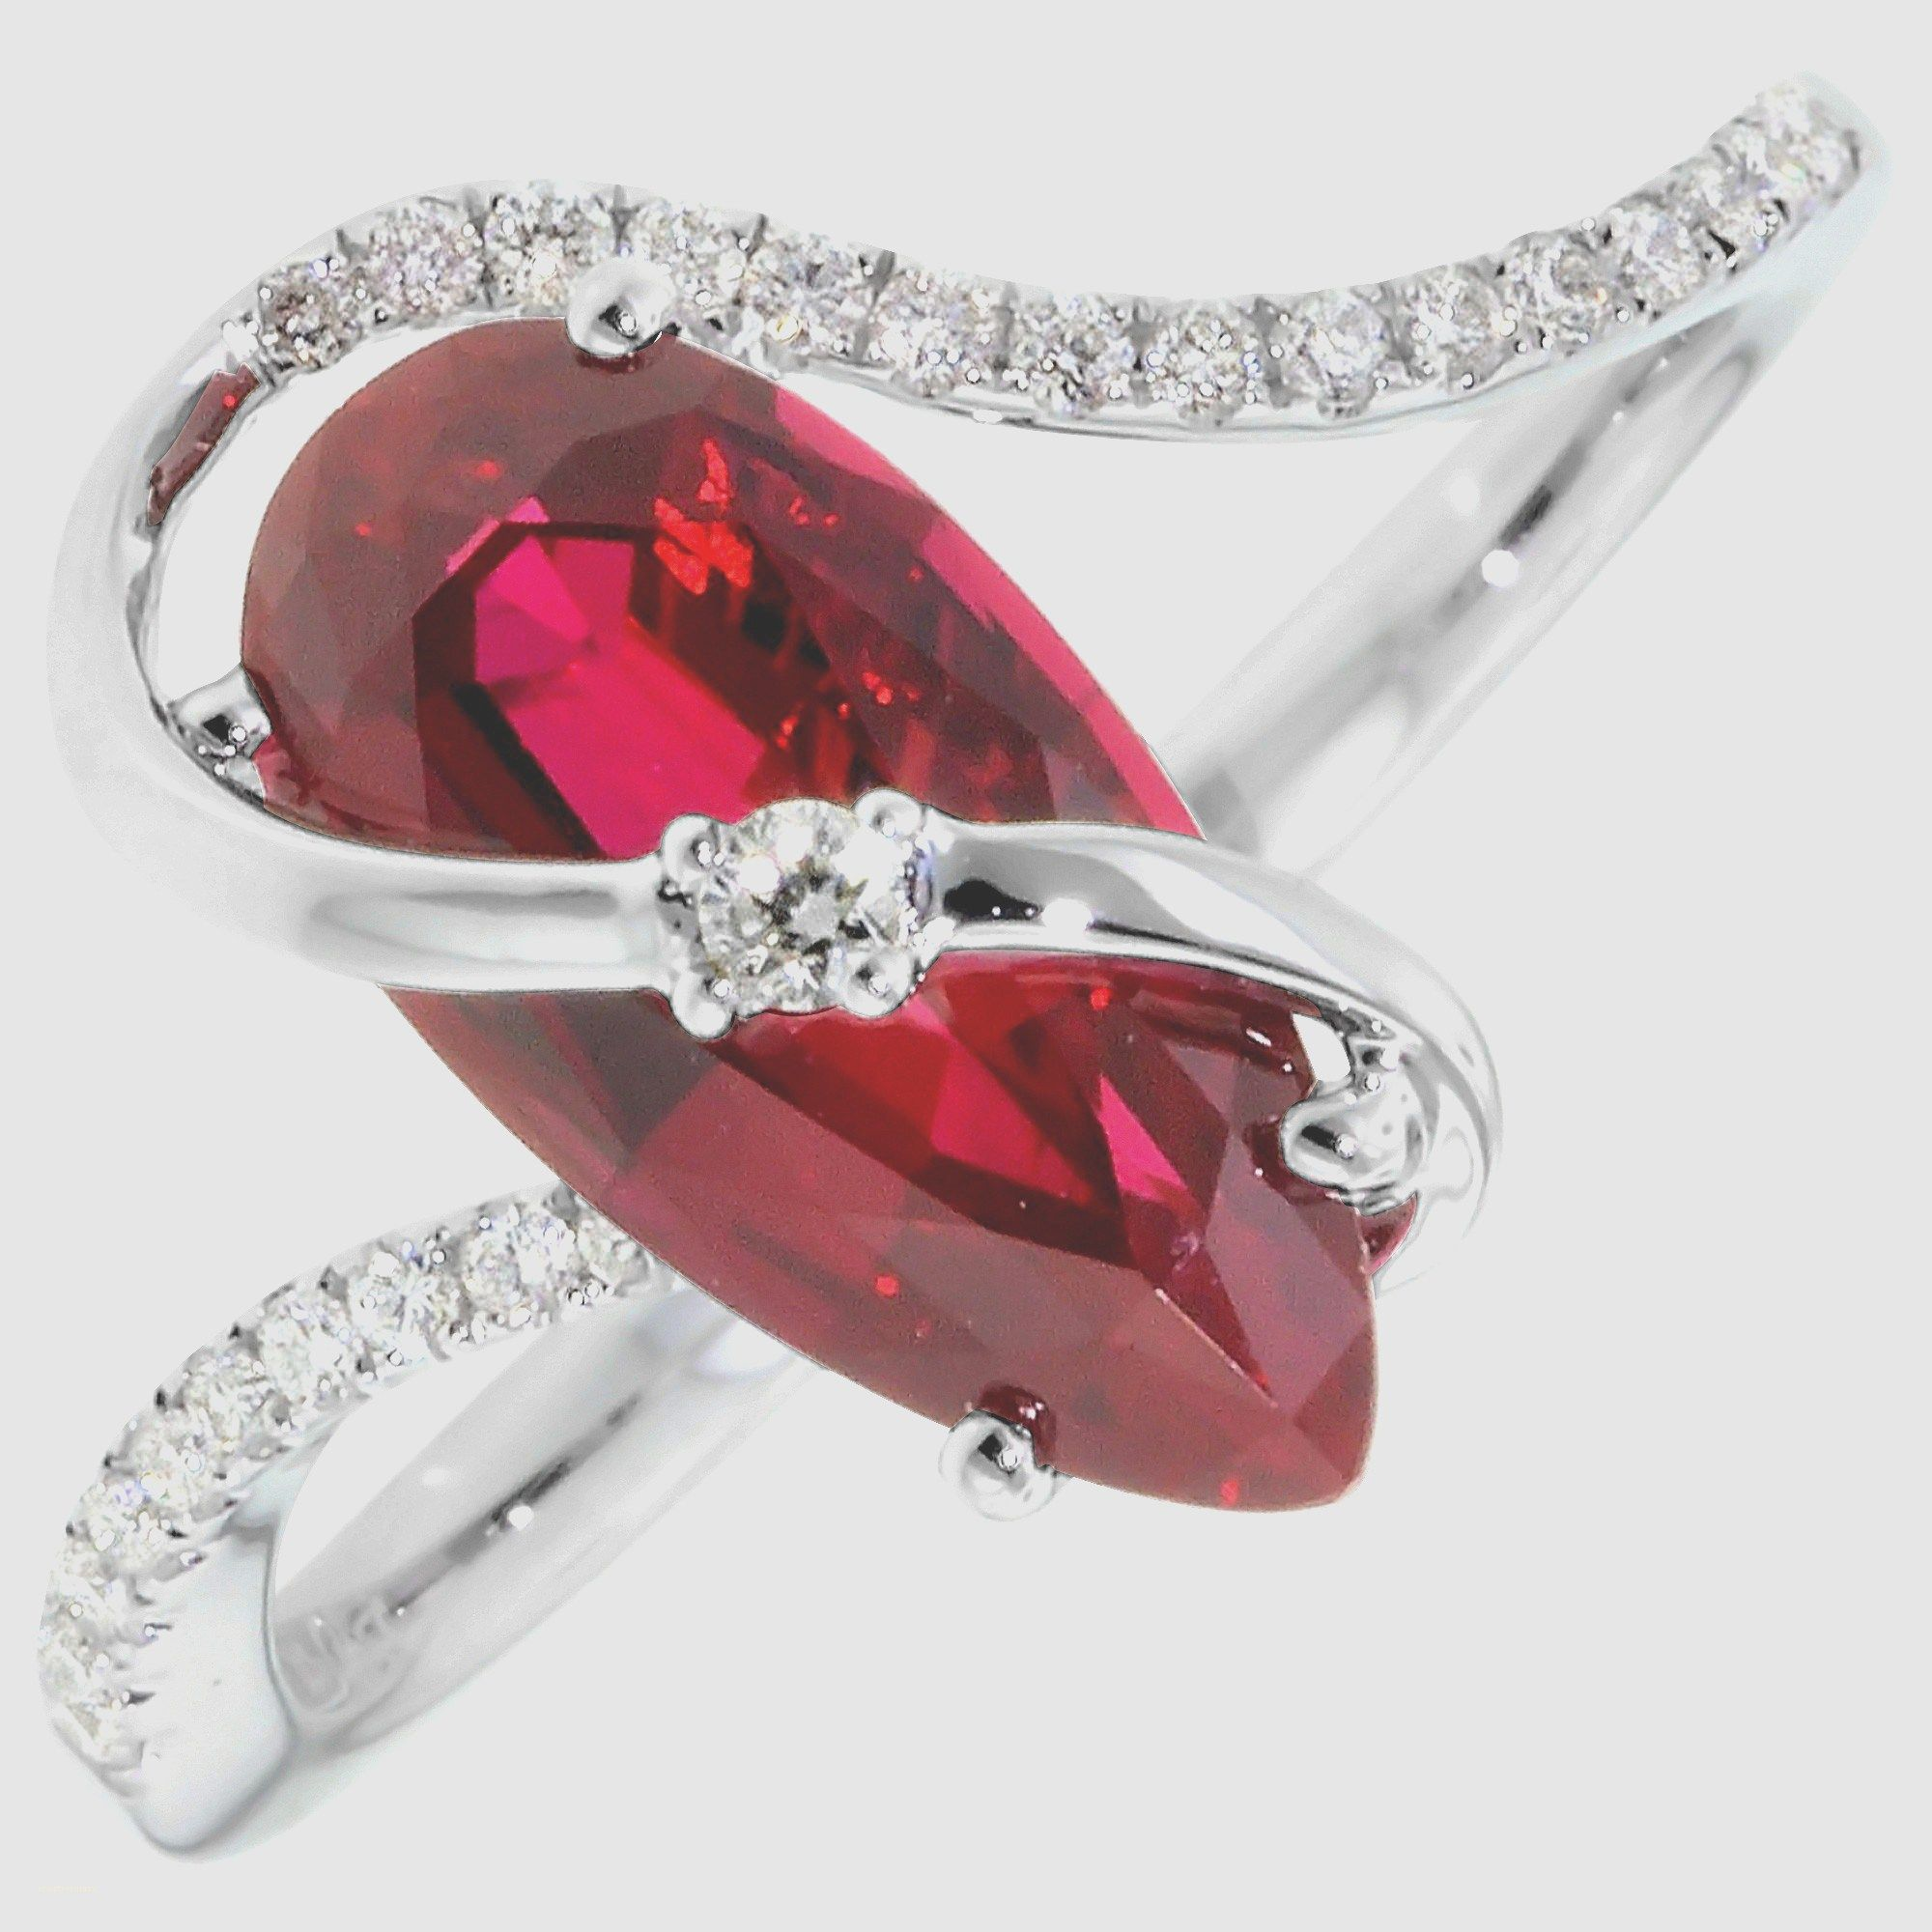 years an lost found carrot ago box wearing gettyimages time rings velvet diamond finds red in on engagement woman ring